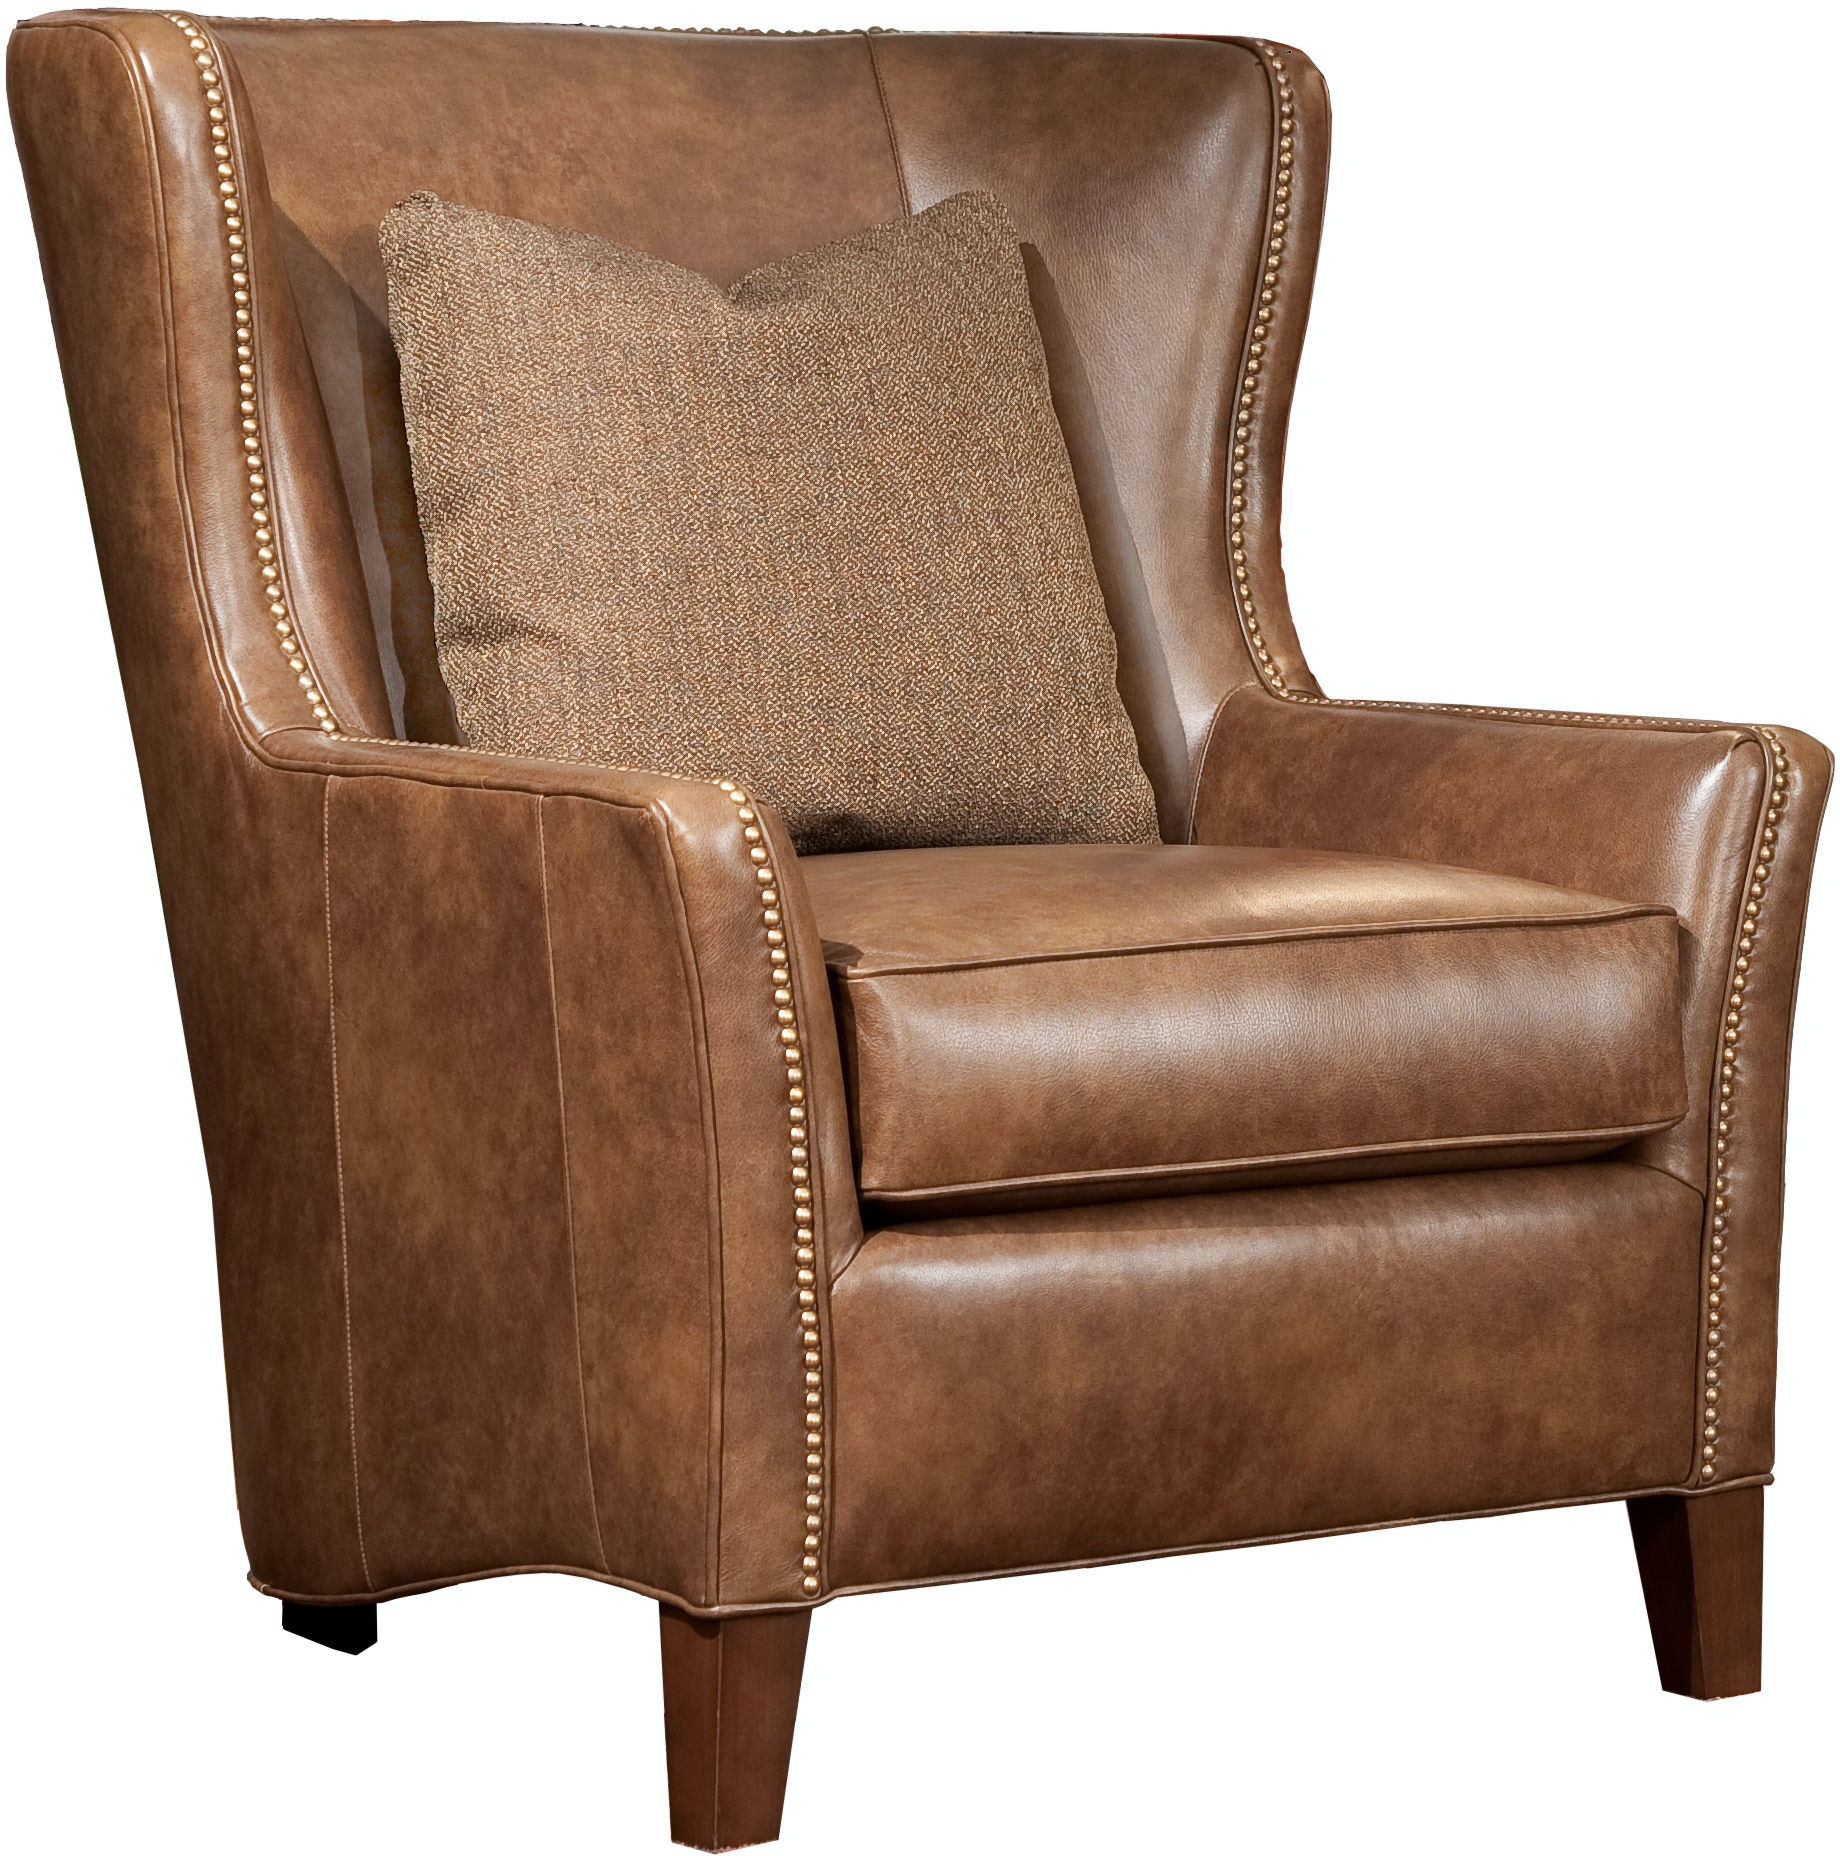 Smith Brothers Living Room 825 Chair with Down Lumbar SB825 30